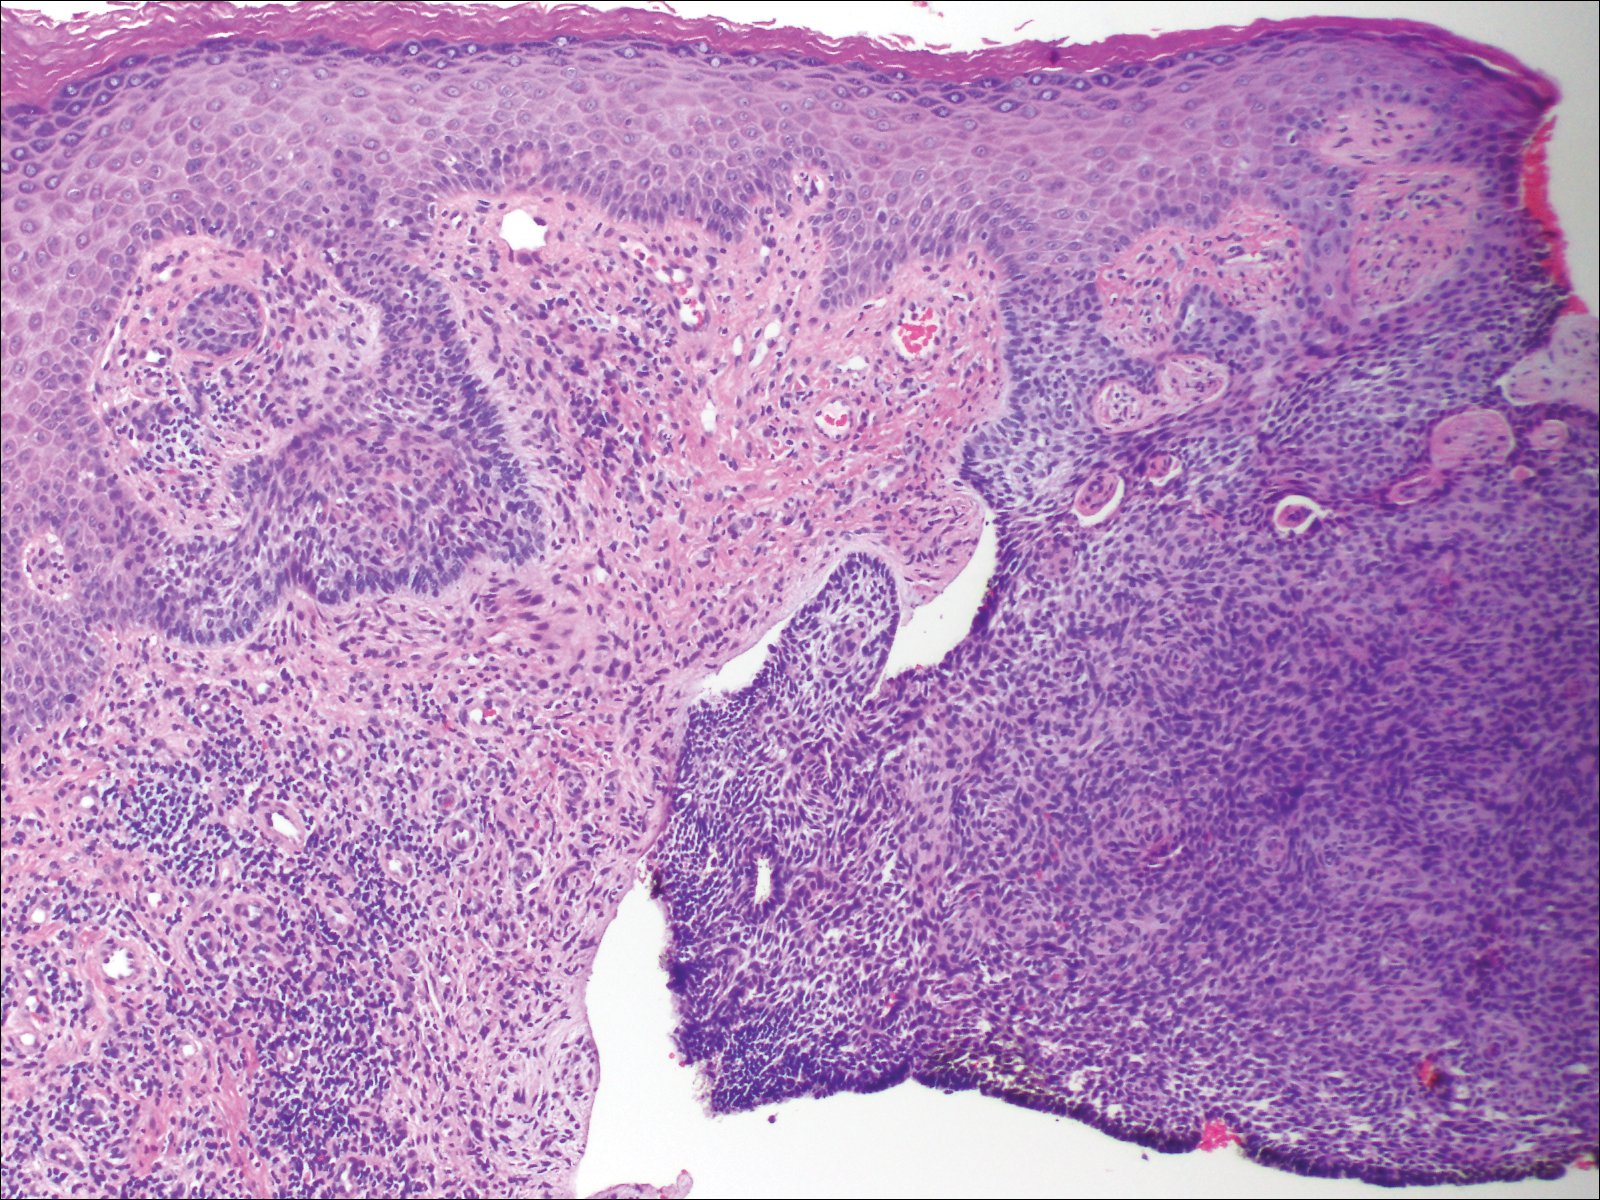 Perianal Basal Cell Carcinoma Treated With Mohs Micrographic Surgery Mdedge Dermatology